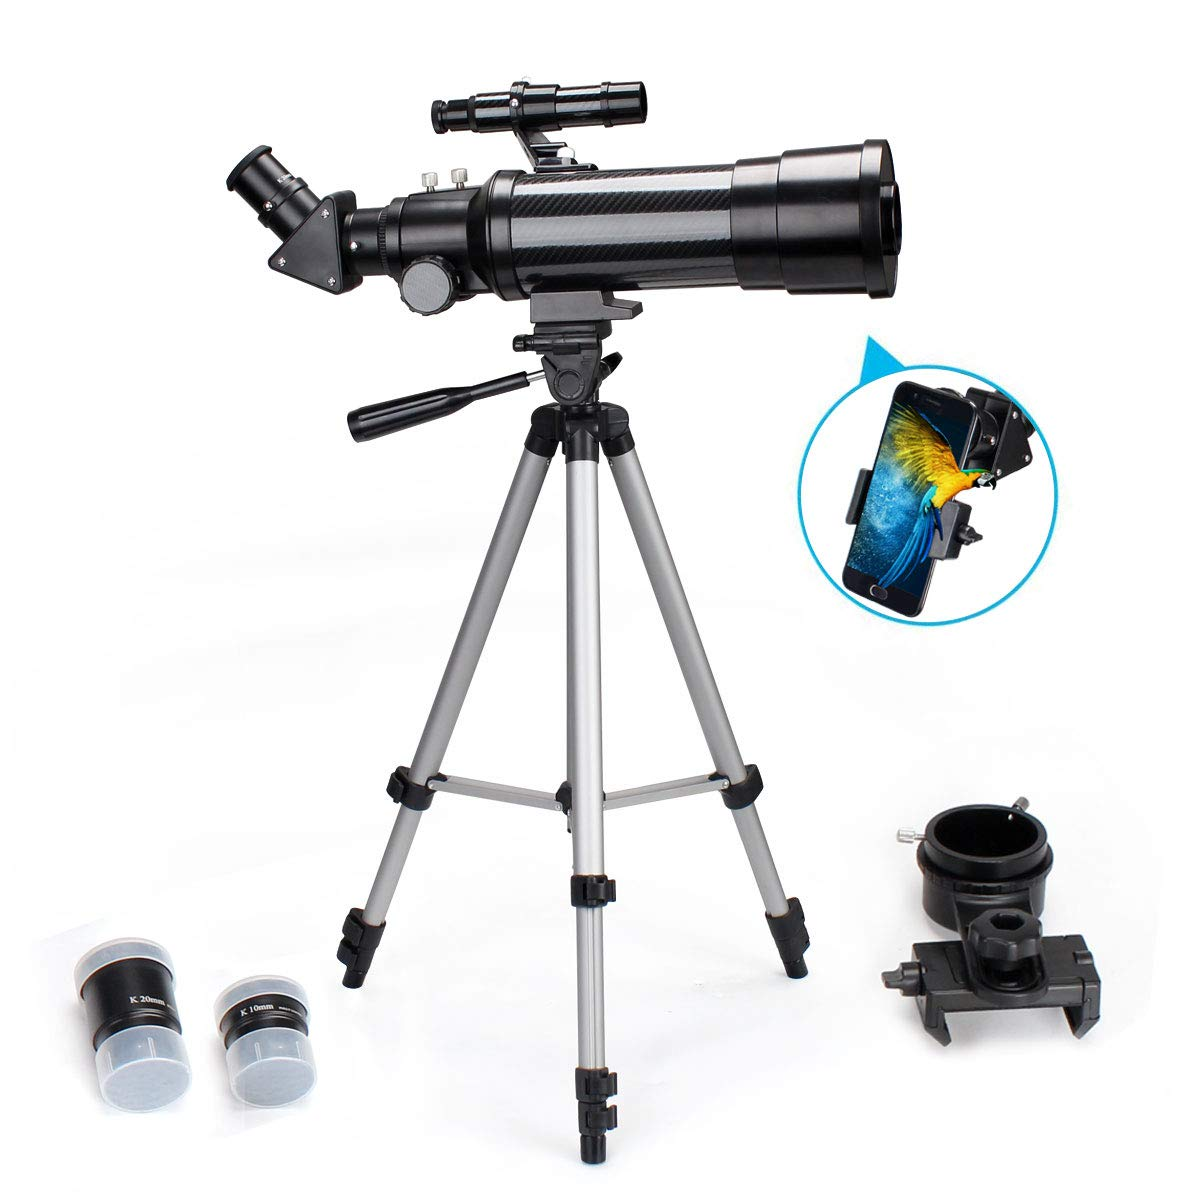 70mm Telescope for Beginners and Kids, Refracter Travel Scope for Viewing Moon Stargazing and Outdoor FMC Lens, image